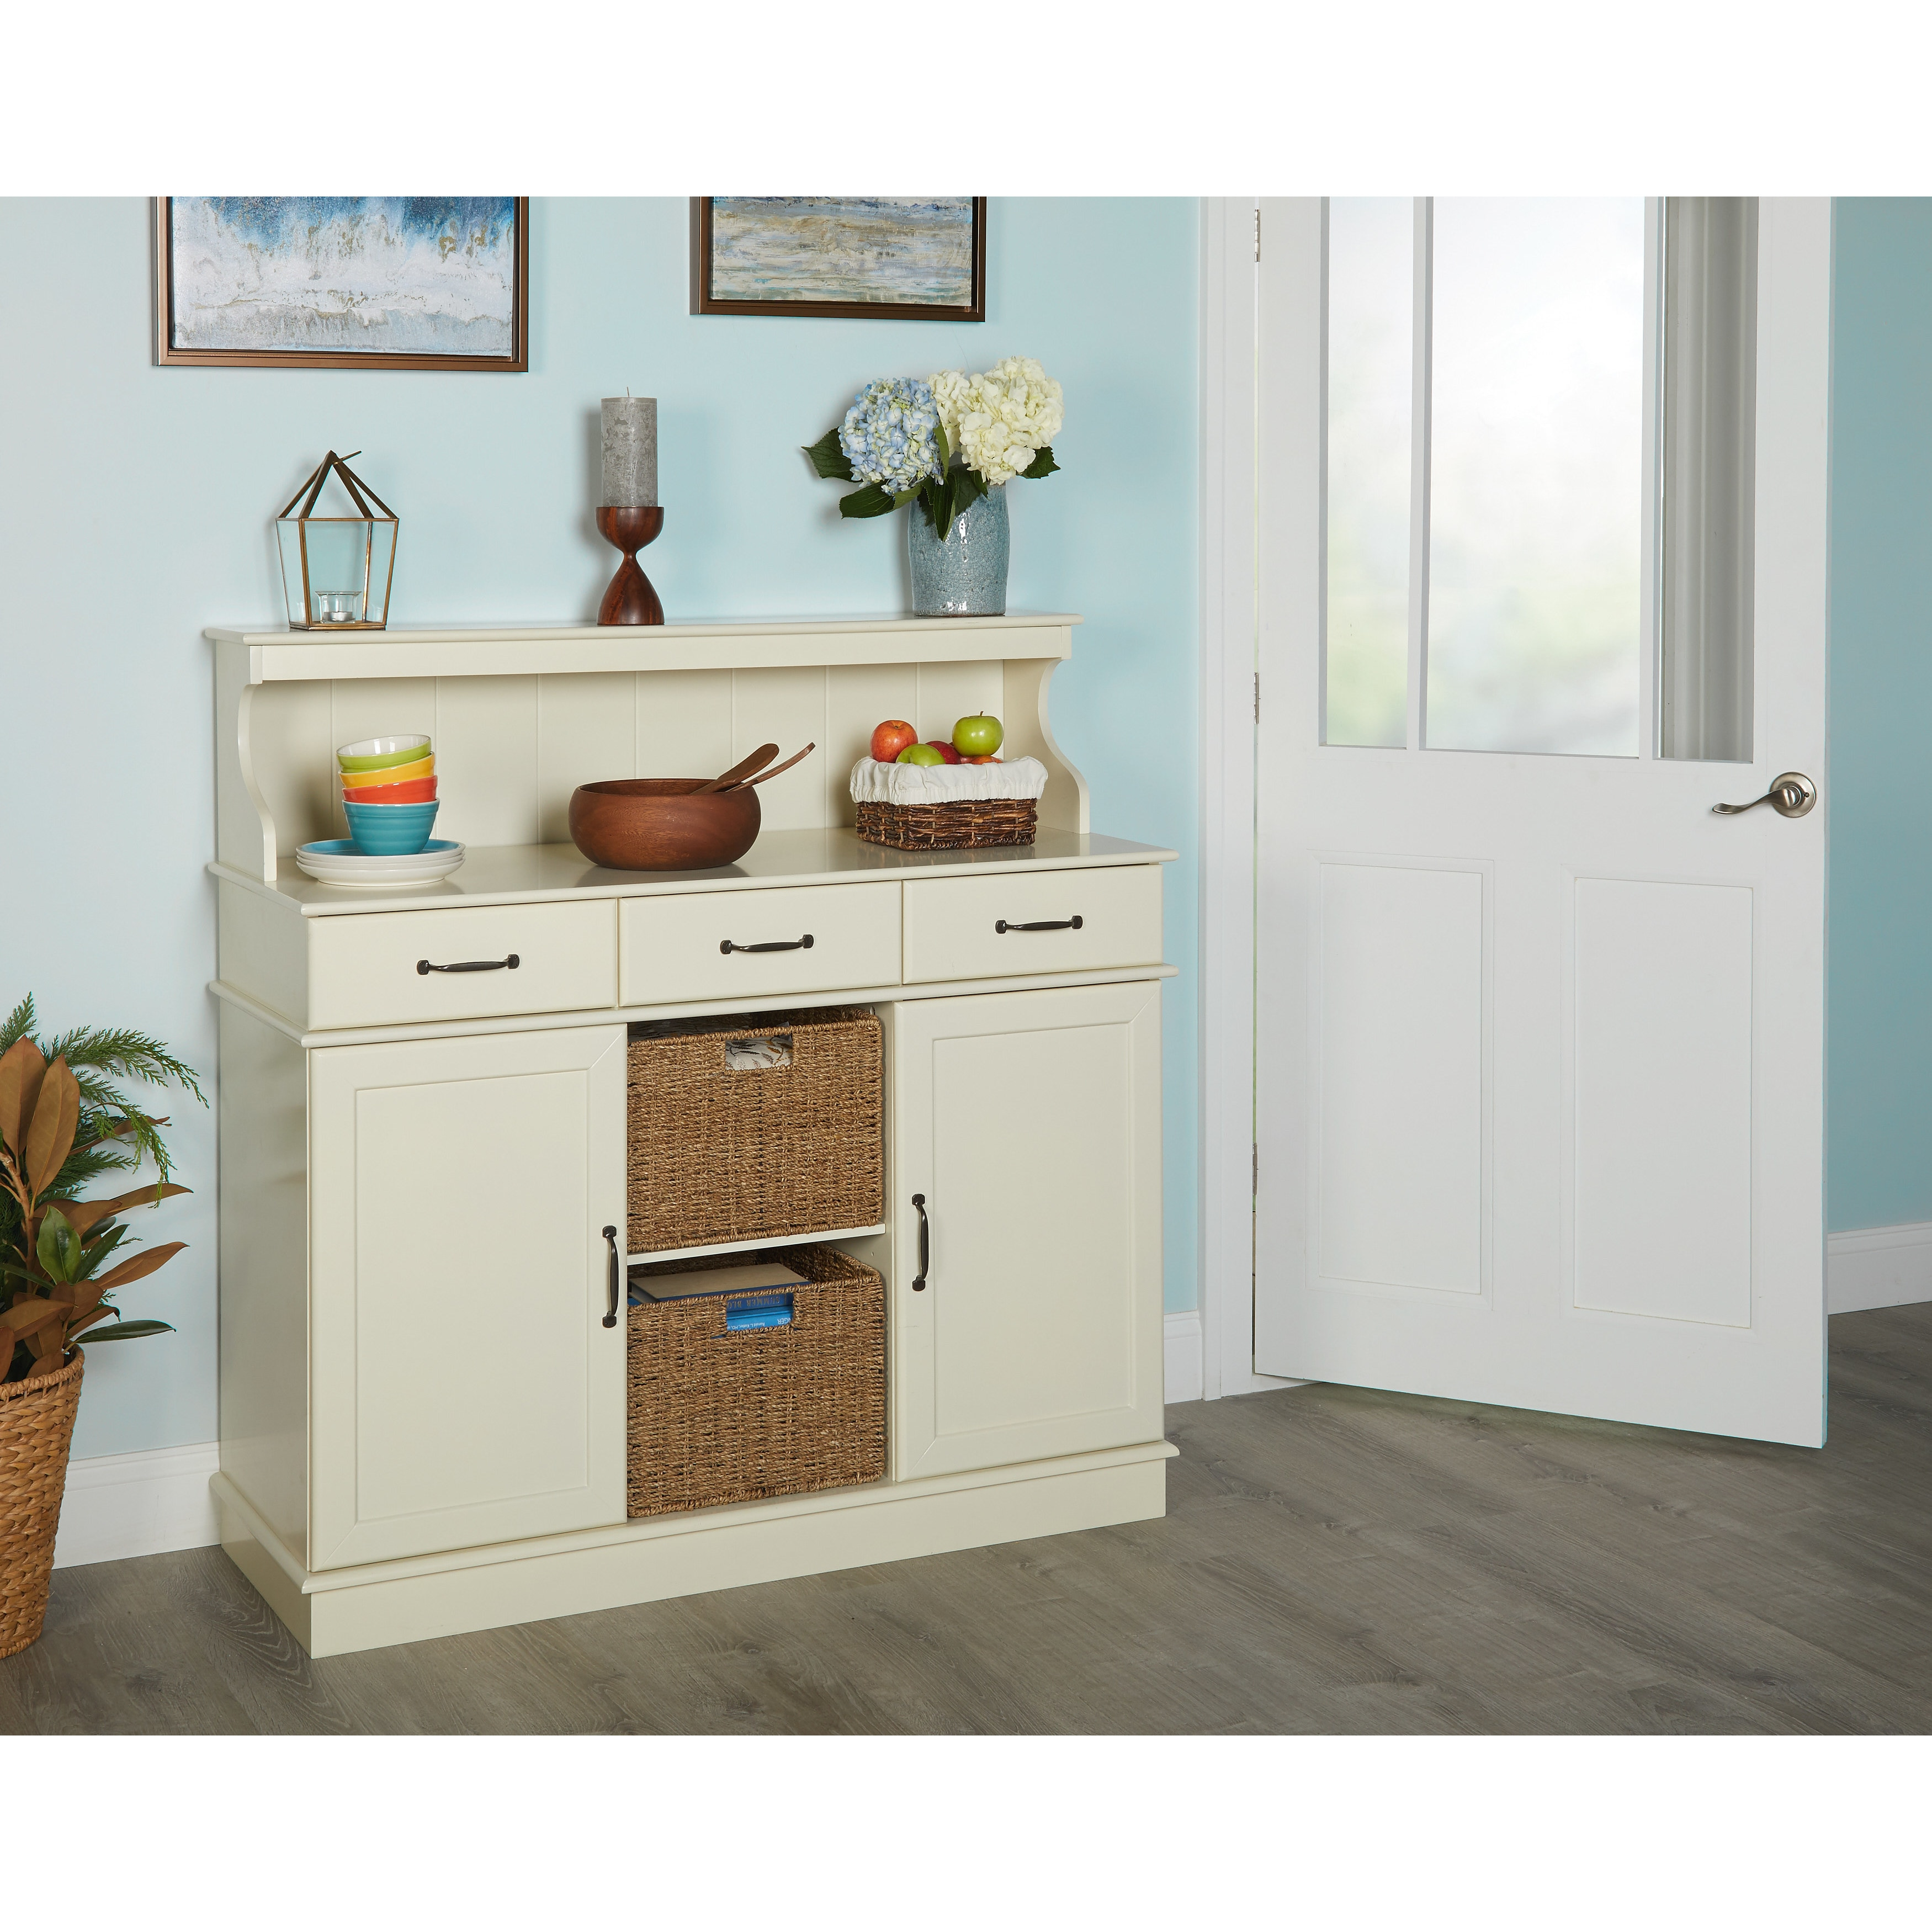 white kitchen buffets hutch pin yourself table hutches projects country from home do and ana it buffet